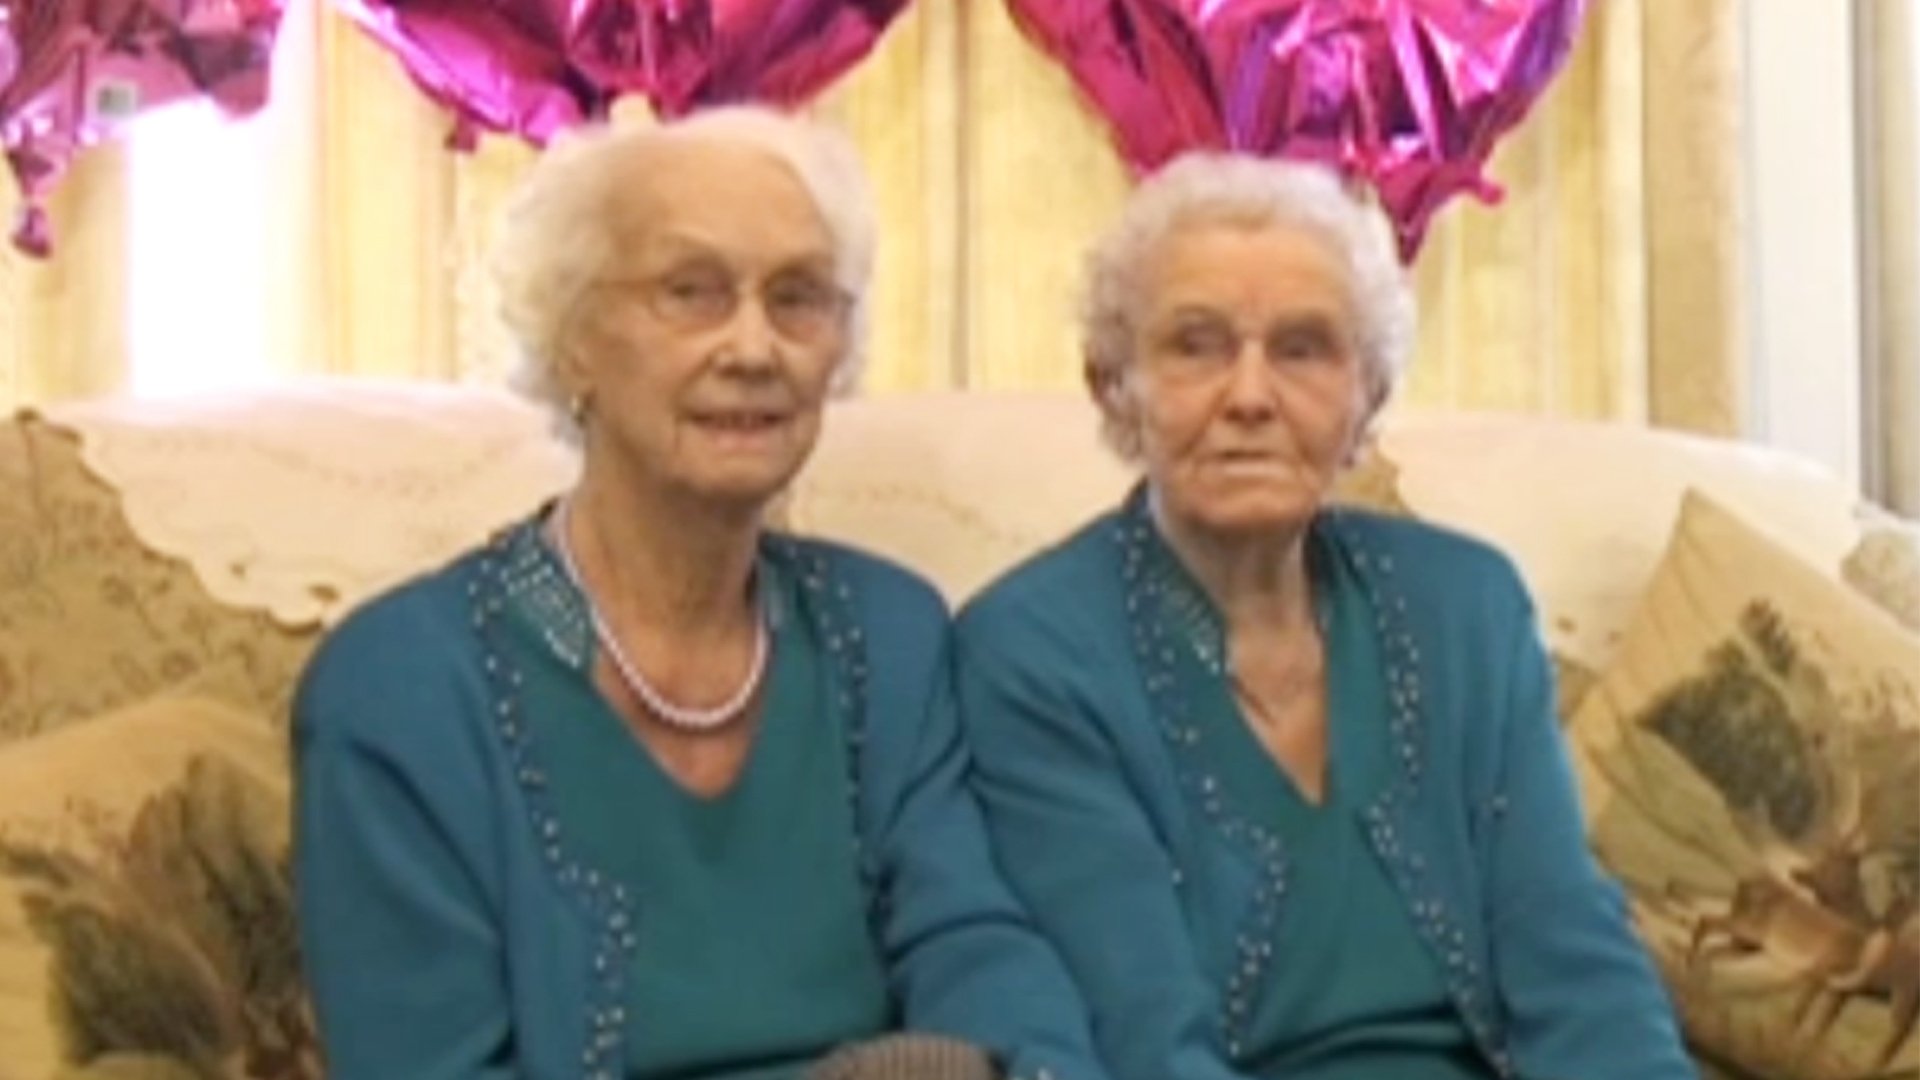 The twin sisters celebrating their 100th birthday